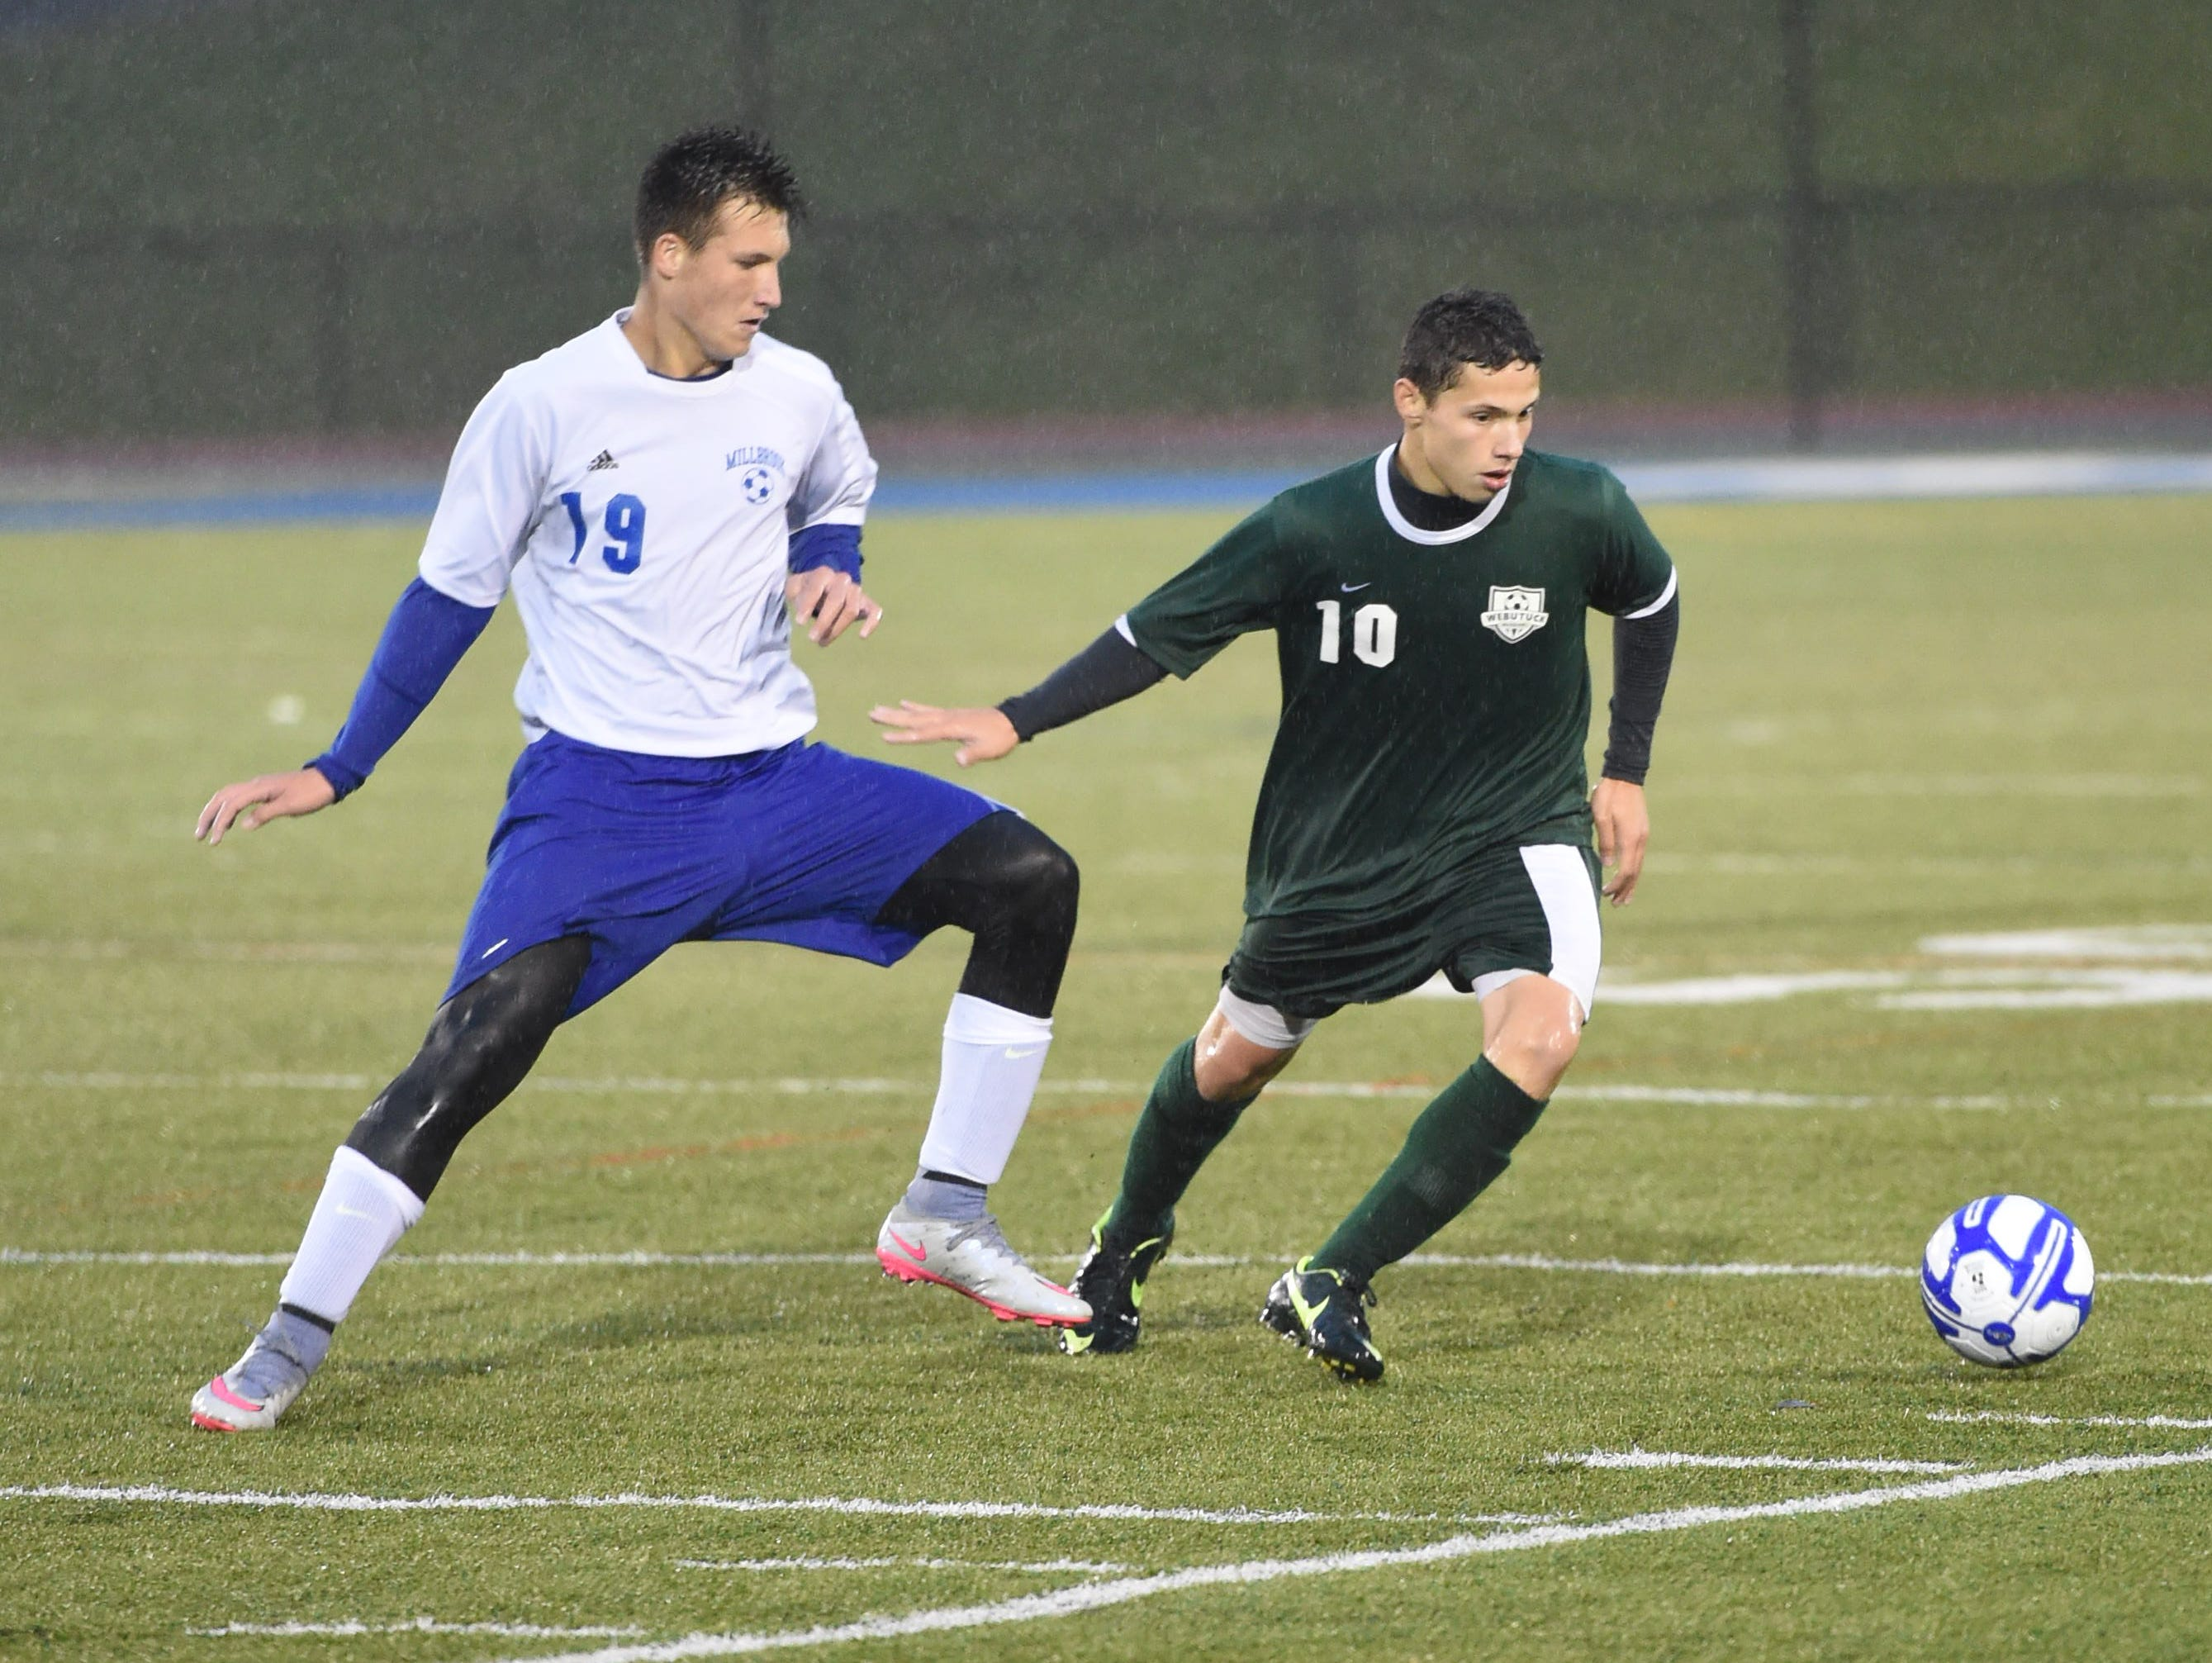 Webutuck's Chris Reed fends off Millbrook's Alex Censi during the Section 9 Class C boys soccer championship on Wednesday.